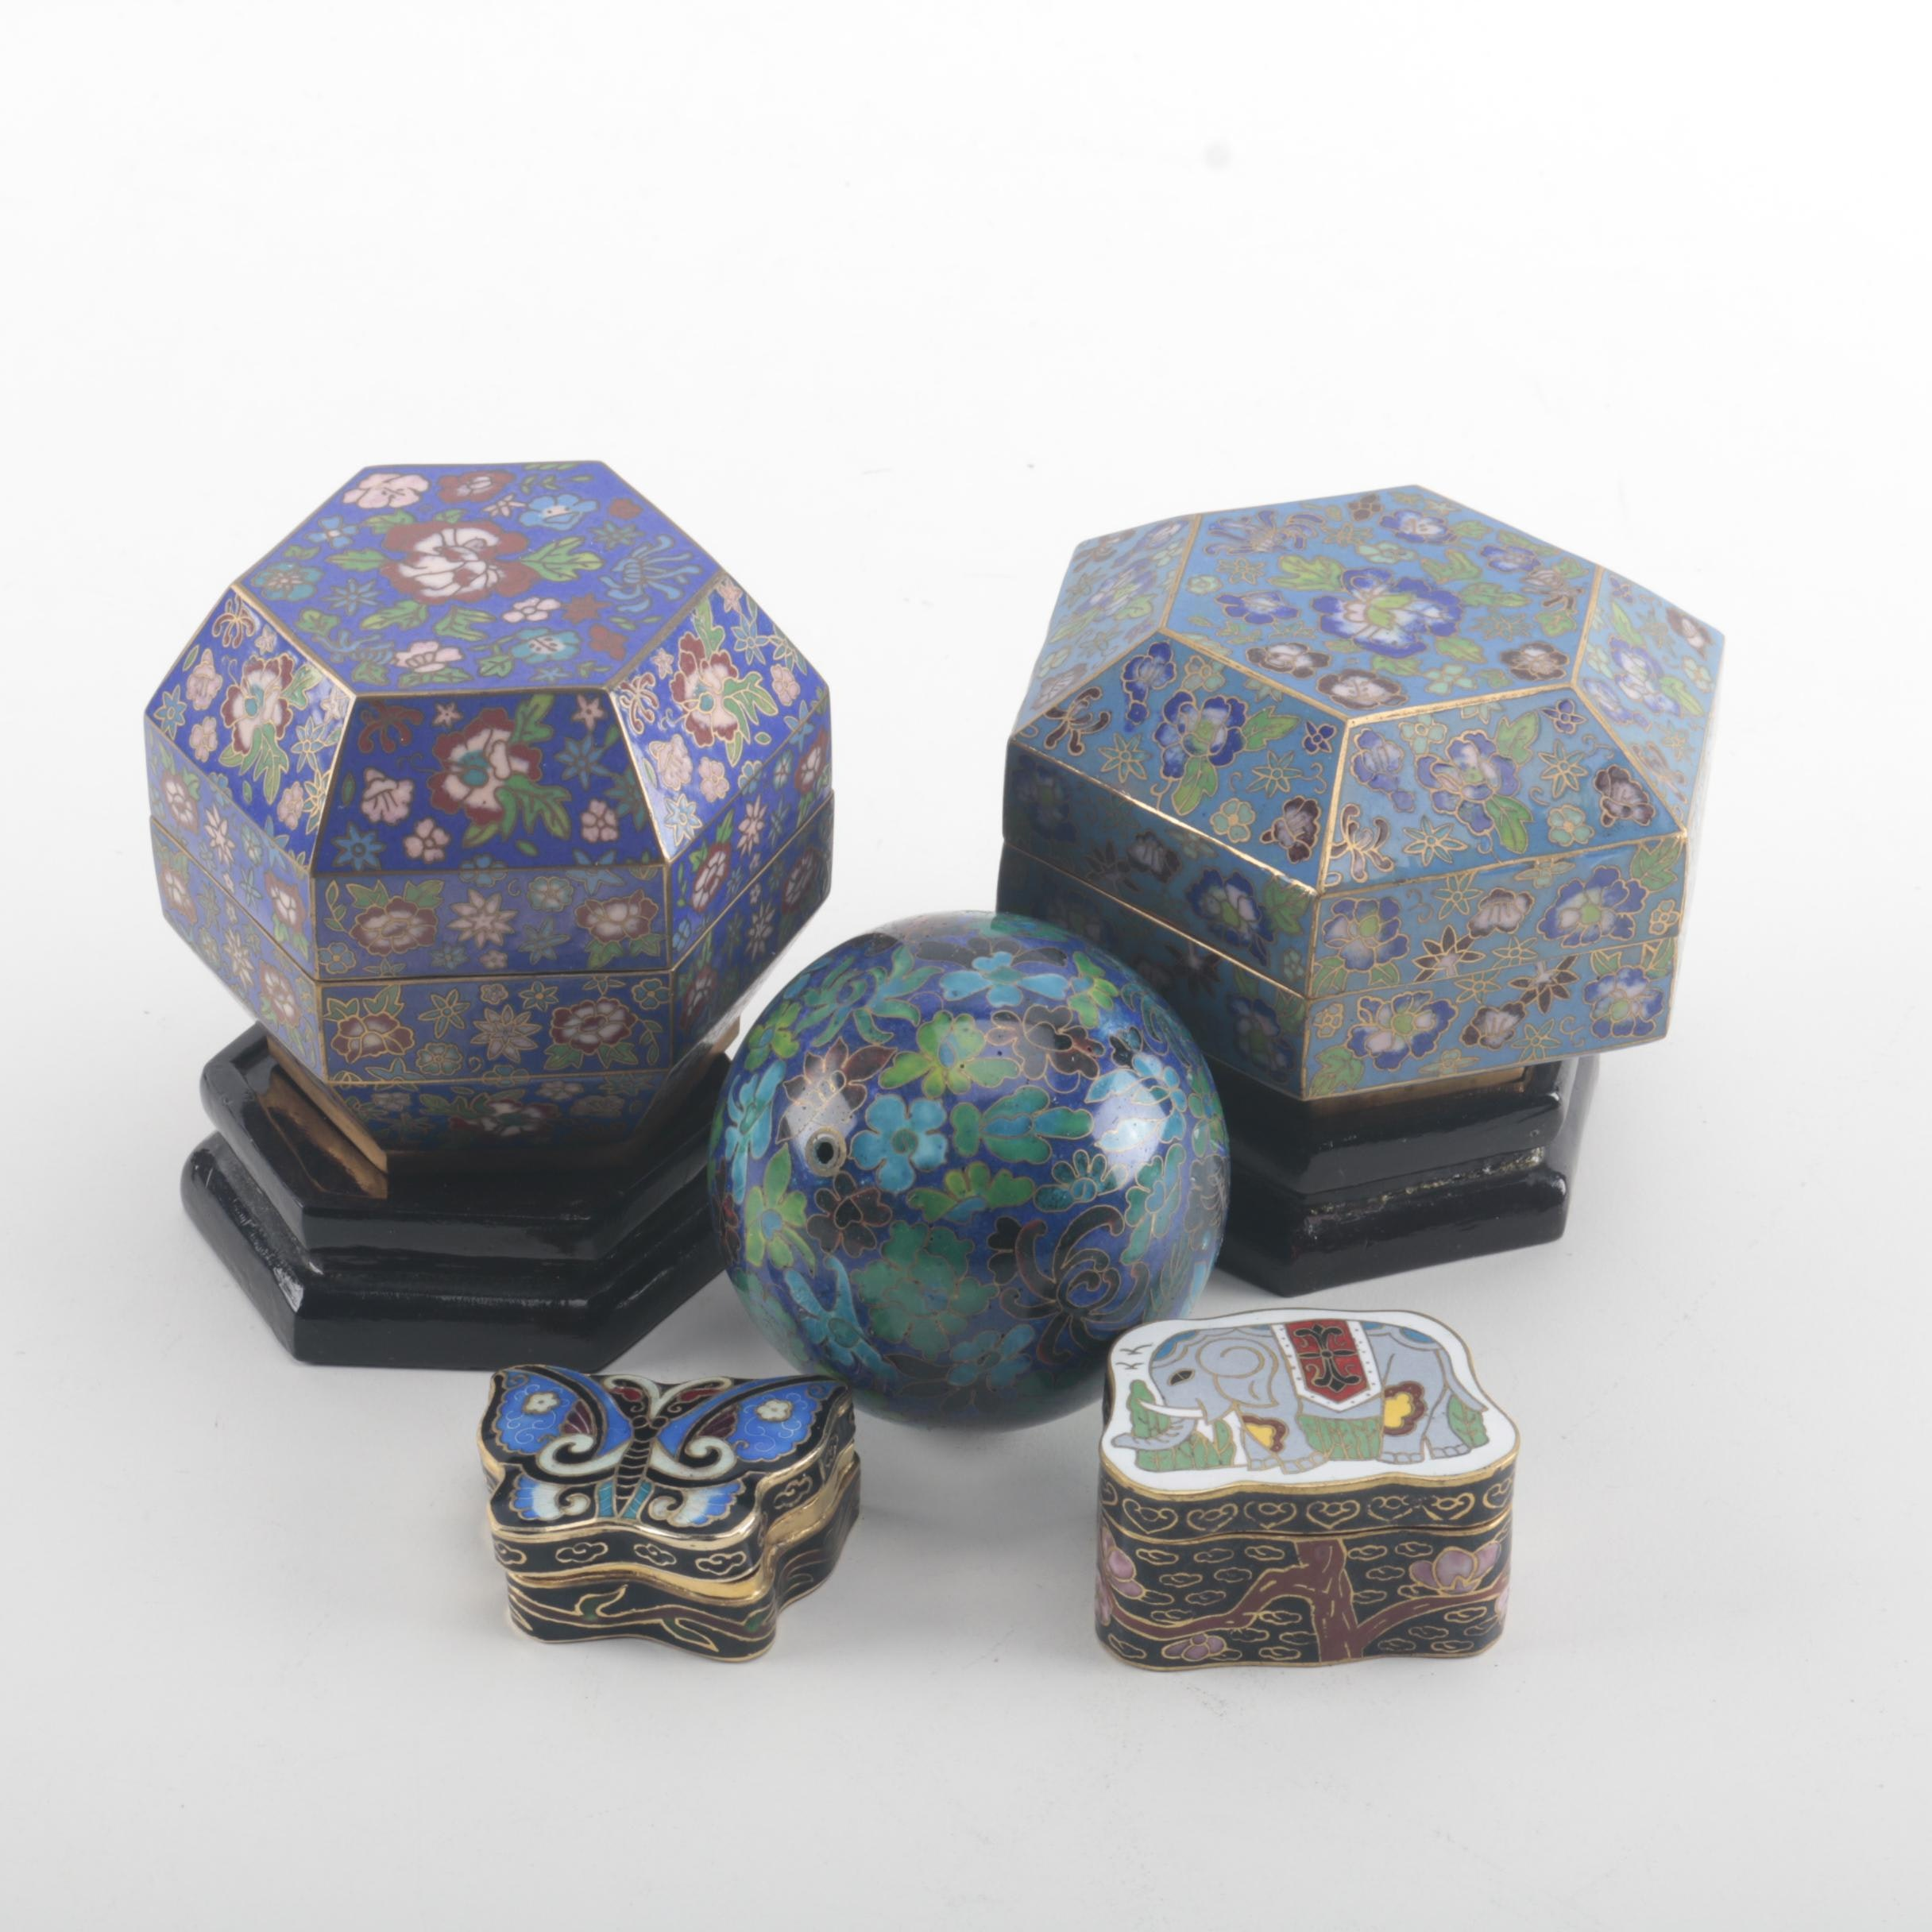 Chinese Cloisonné Trinket Boxes and Decorative Items